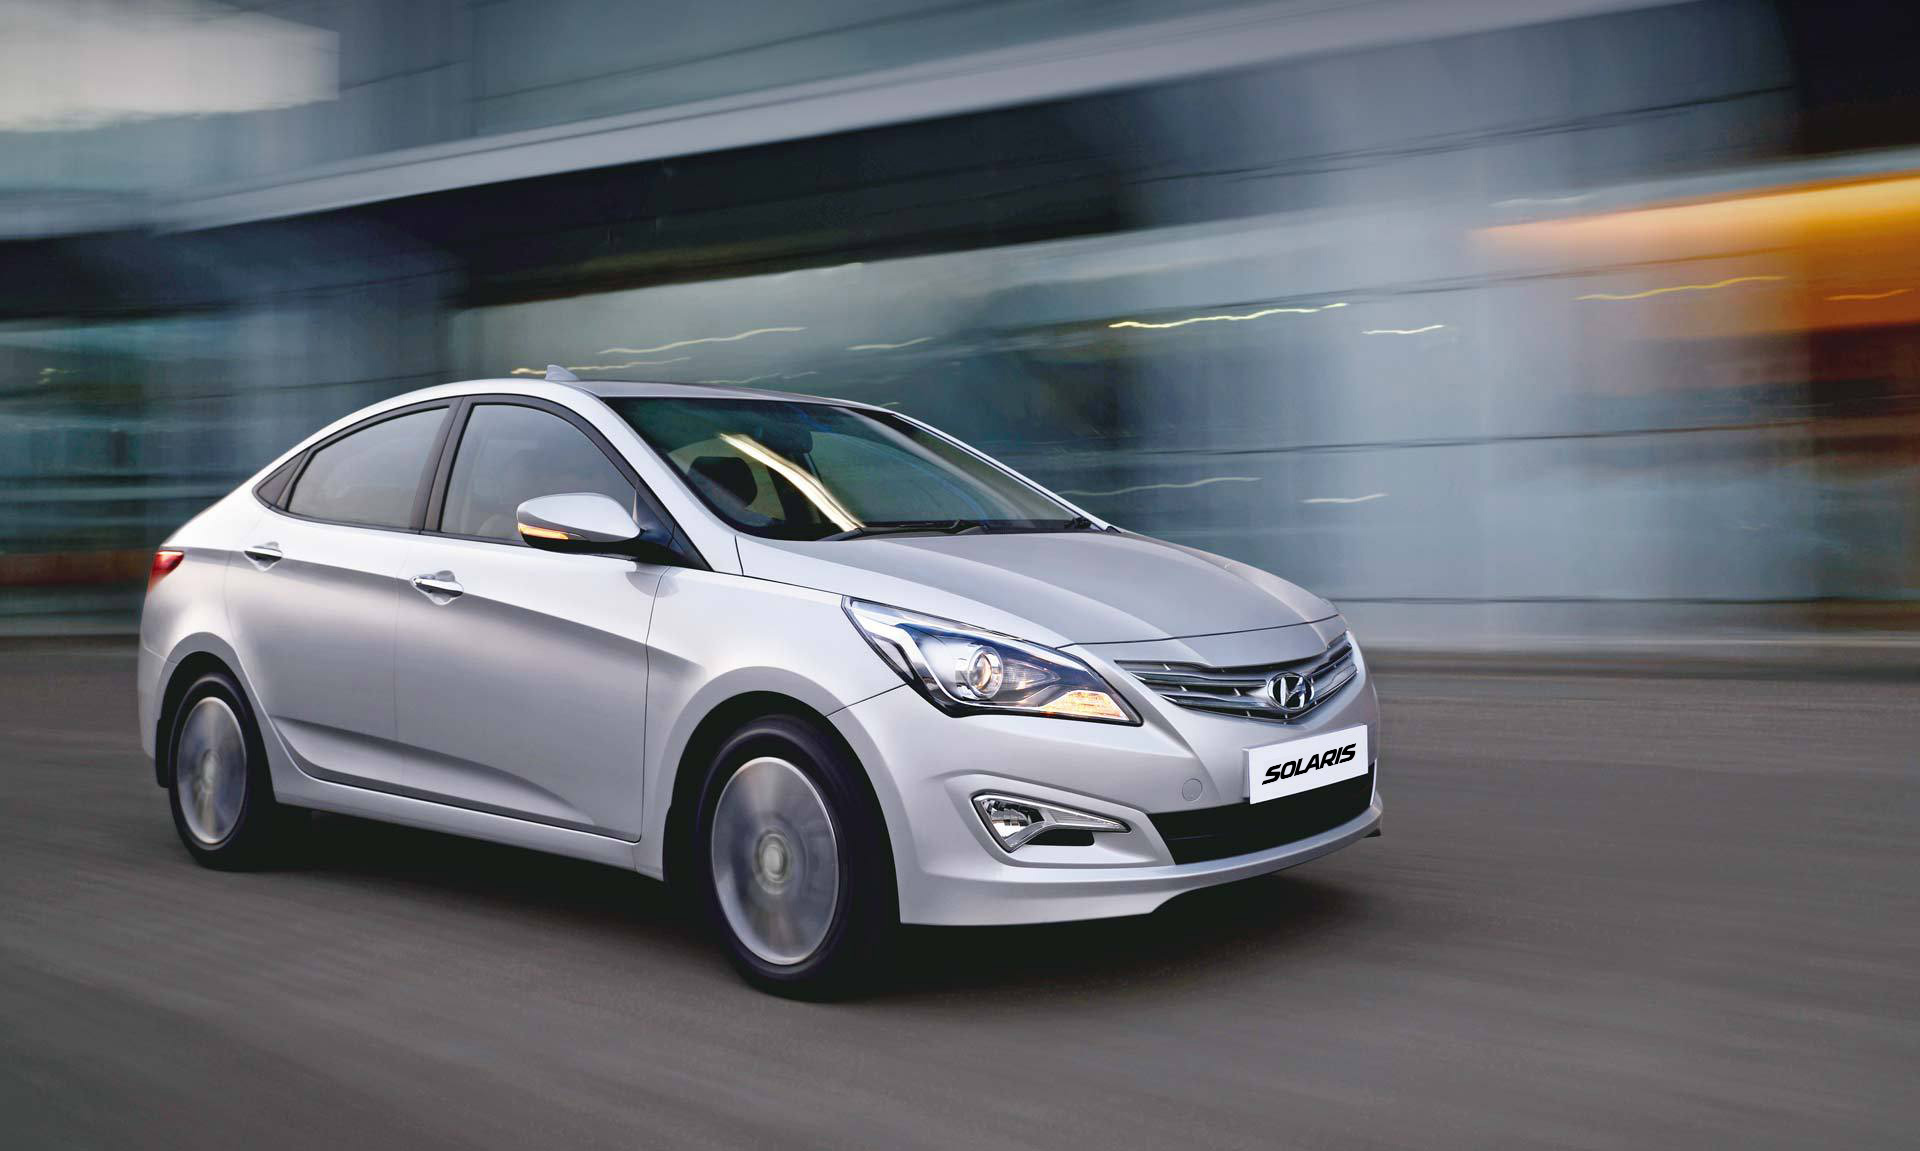 2017 Hyundai Solaris Prices In Egypt Gulf Specs Amp Reviews